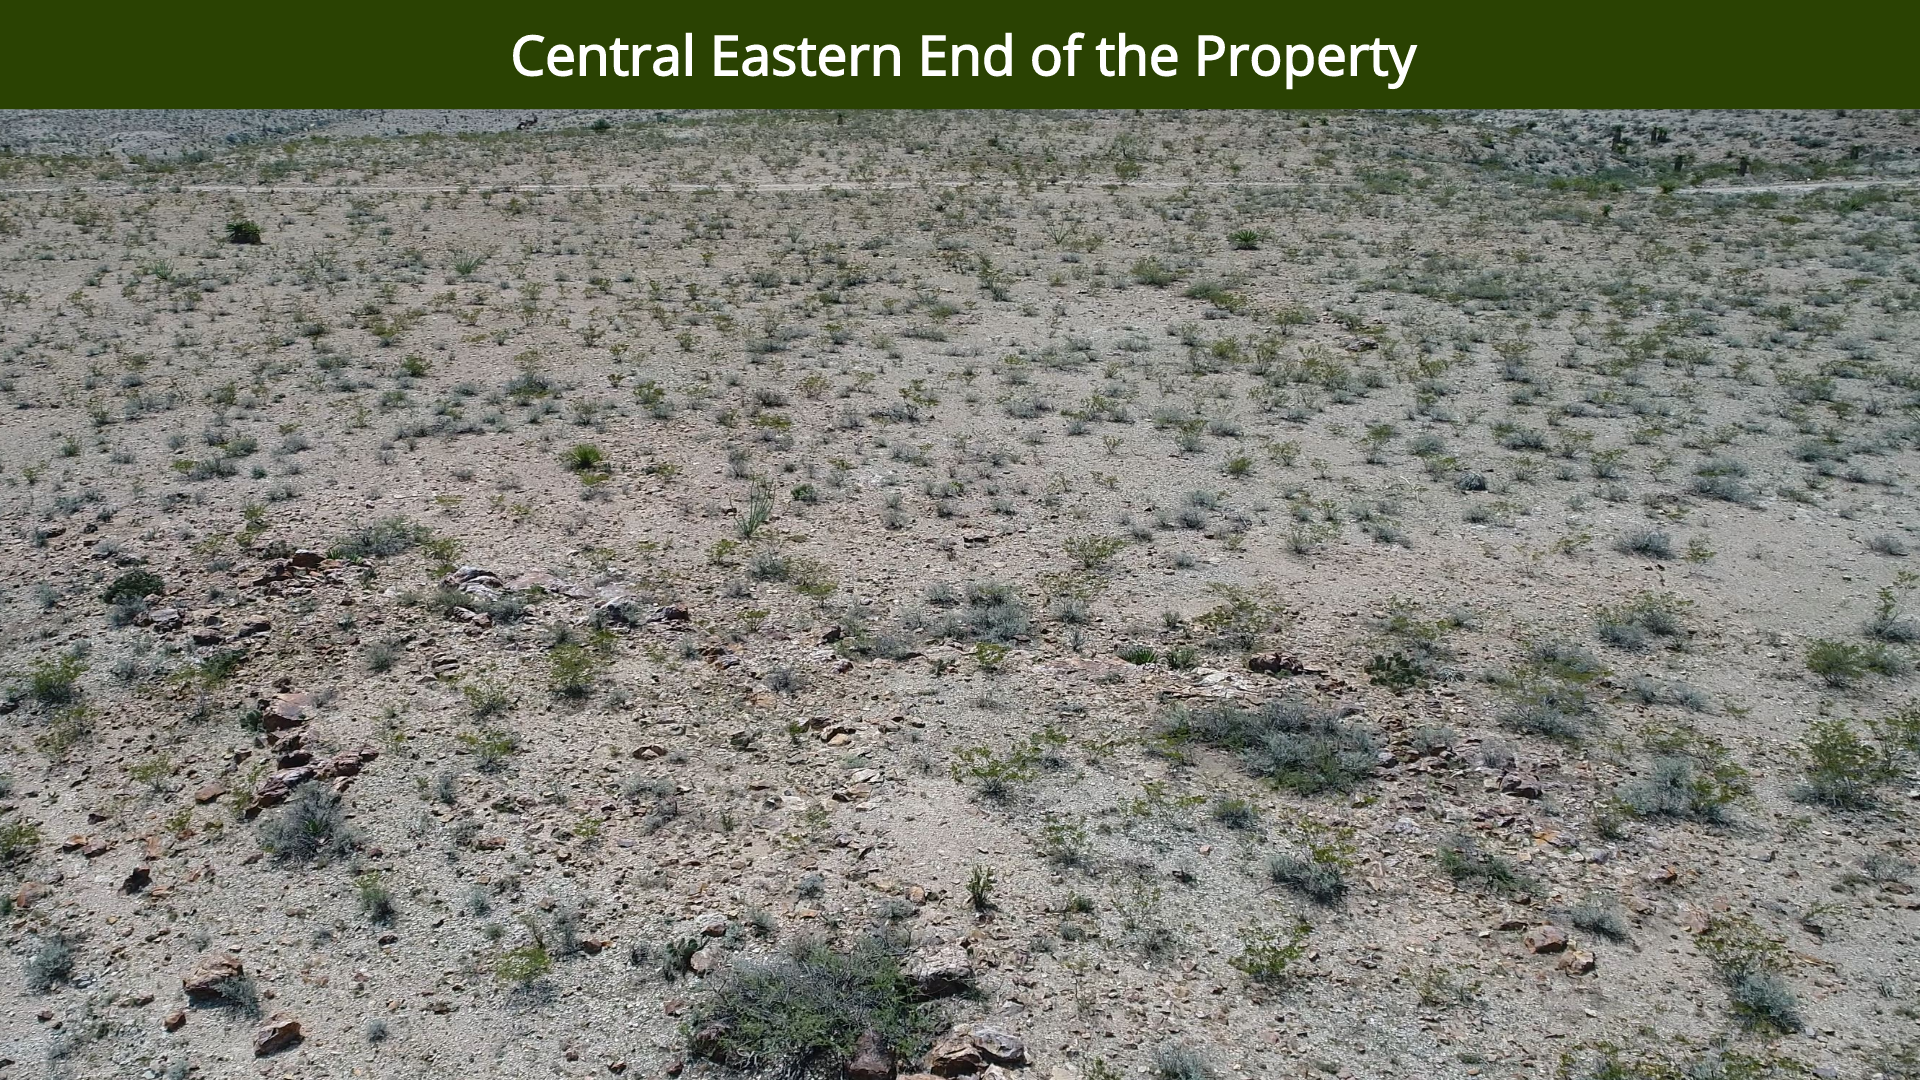 Central Eastern End of the Property